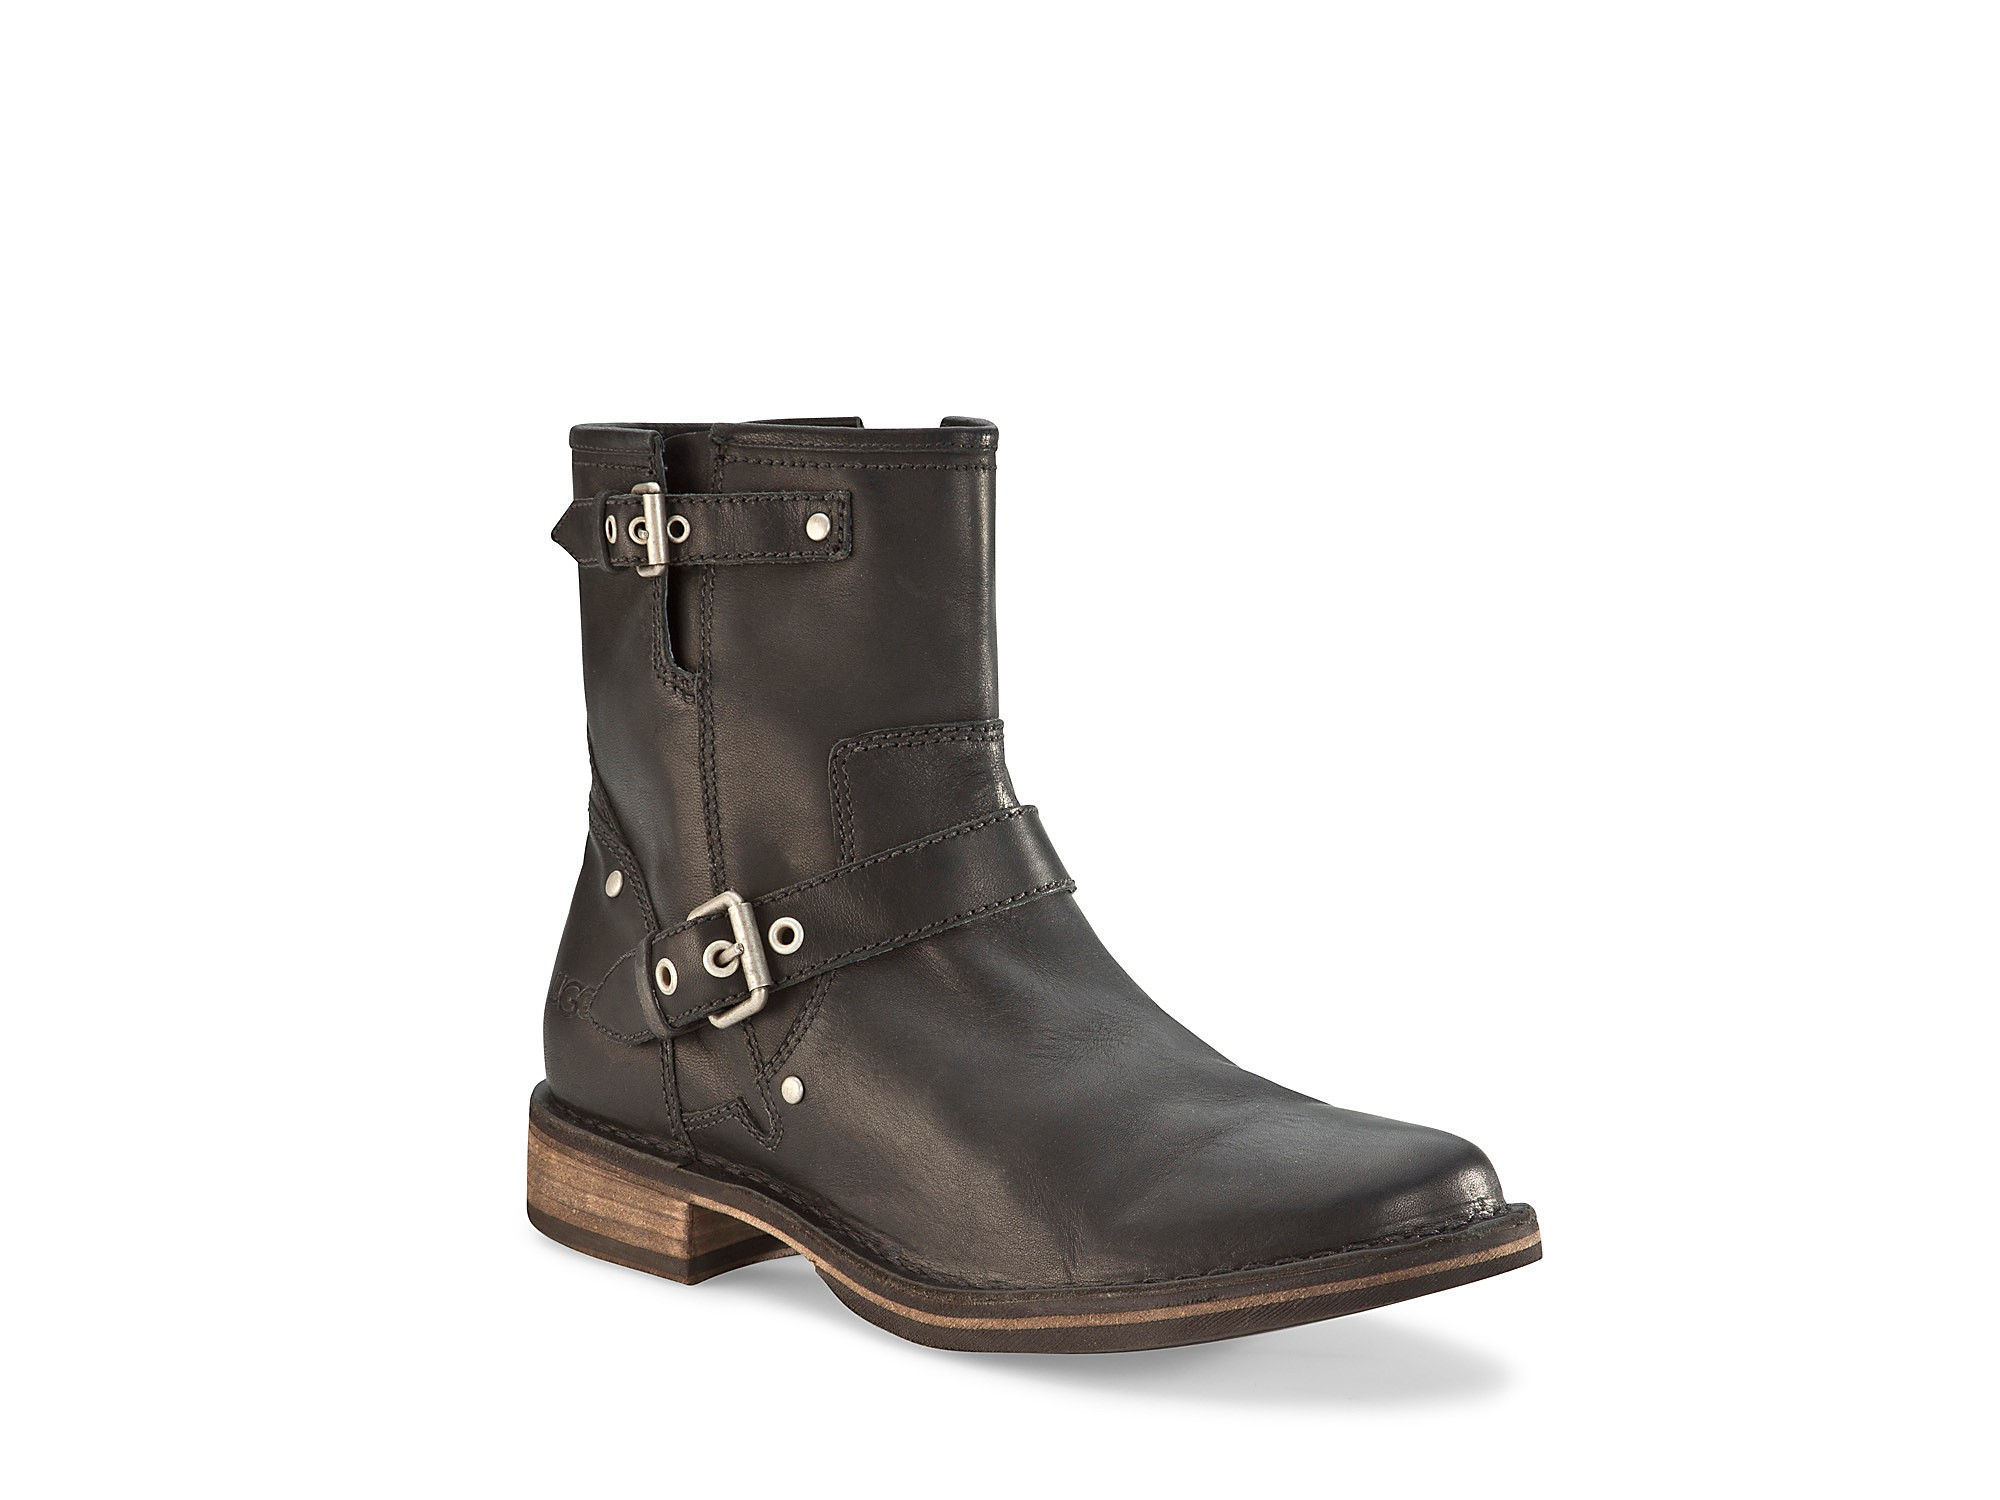 d7ce34df155 Ugg Moto Glitter Boots - cheap watches mgc-gas.com